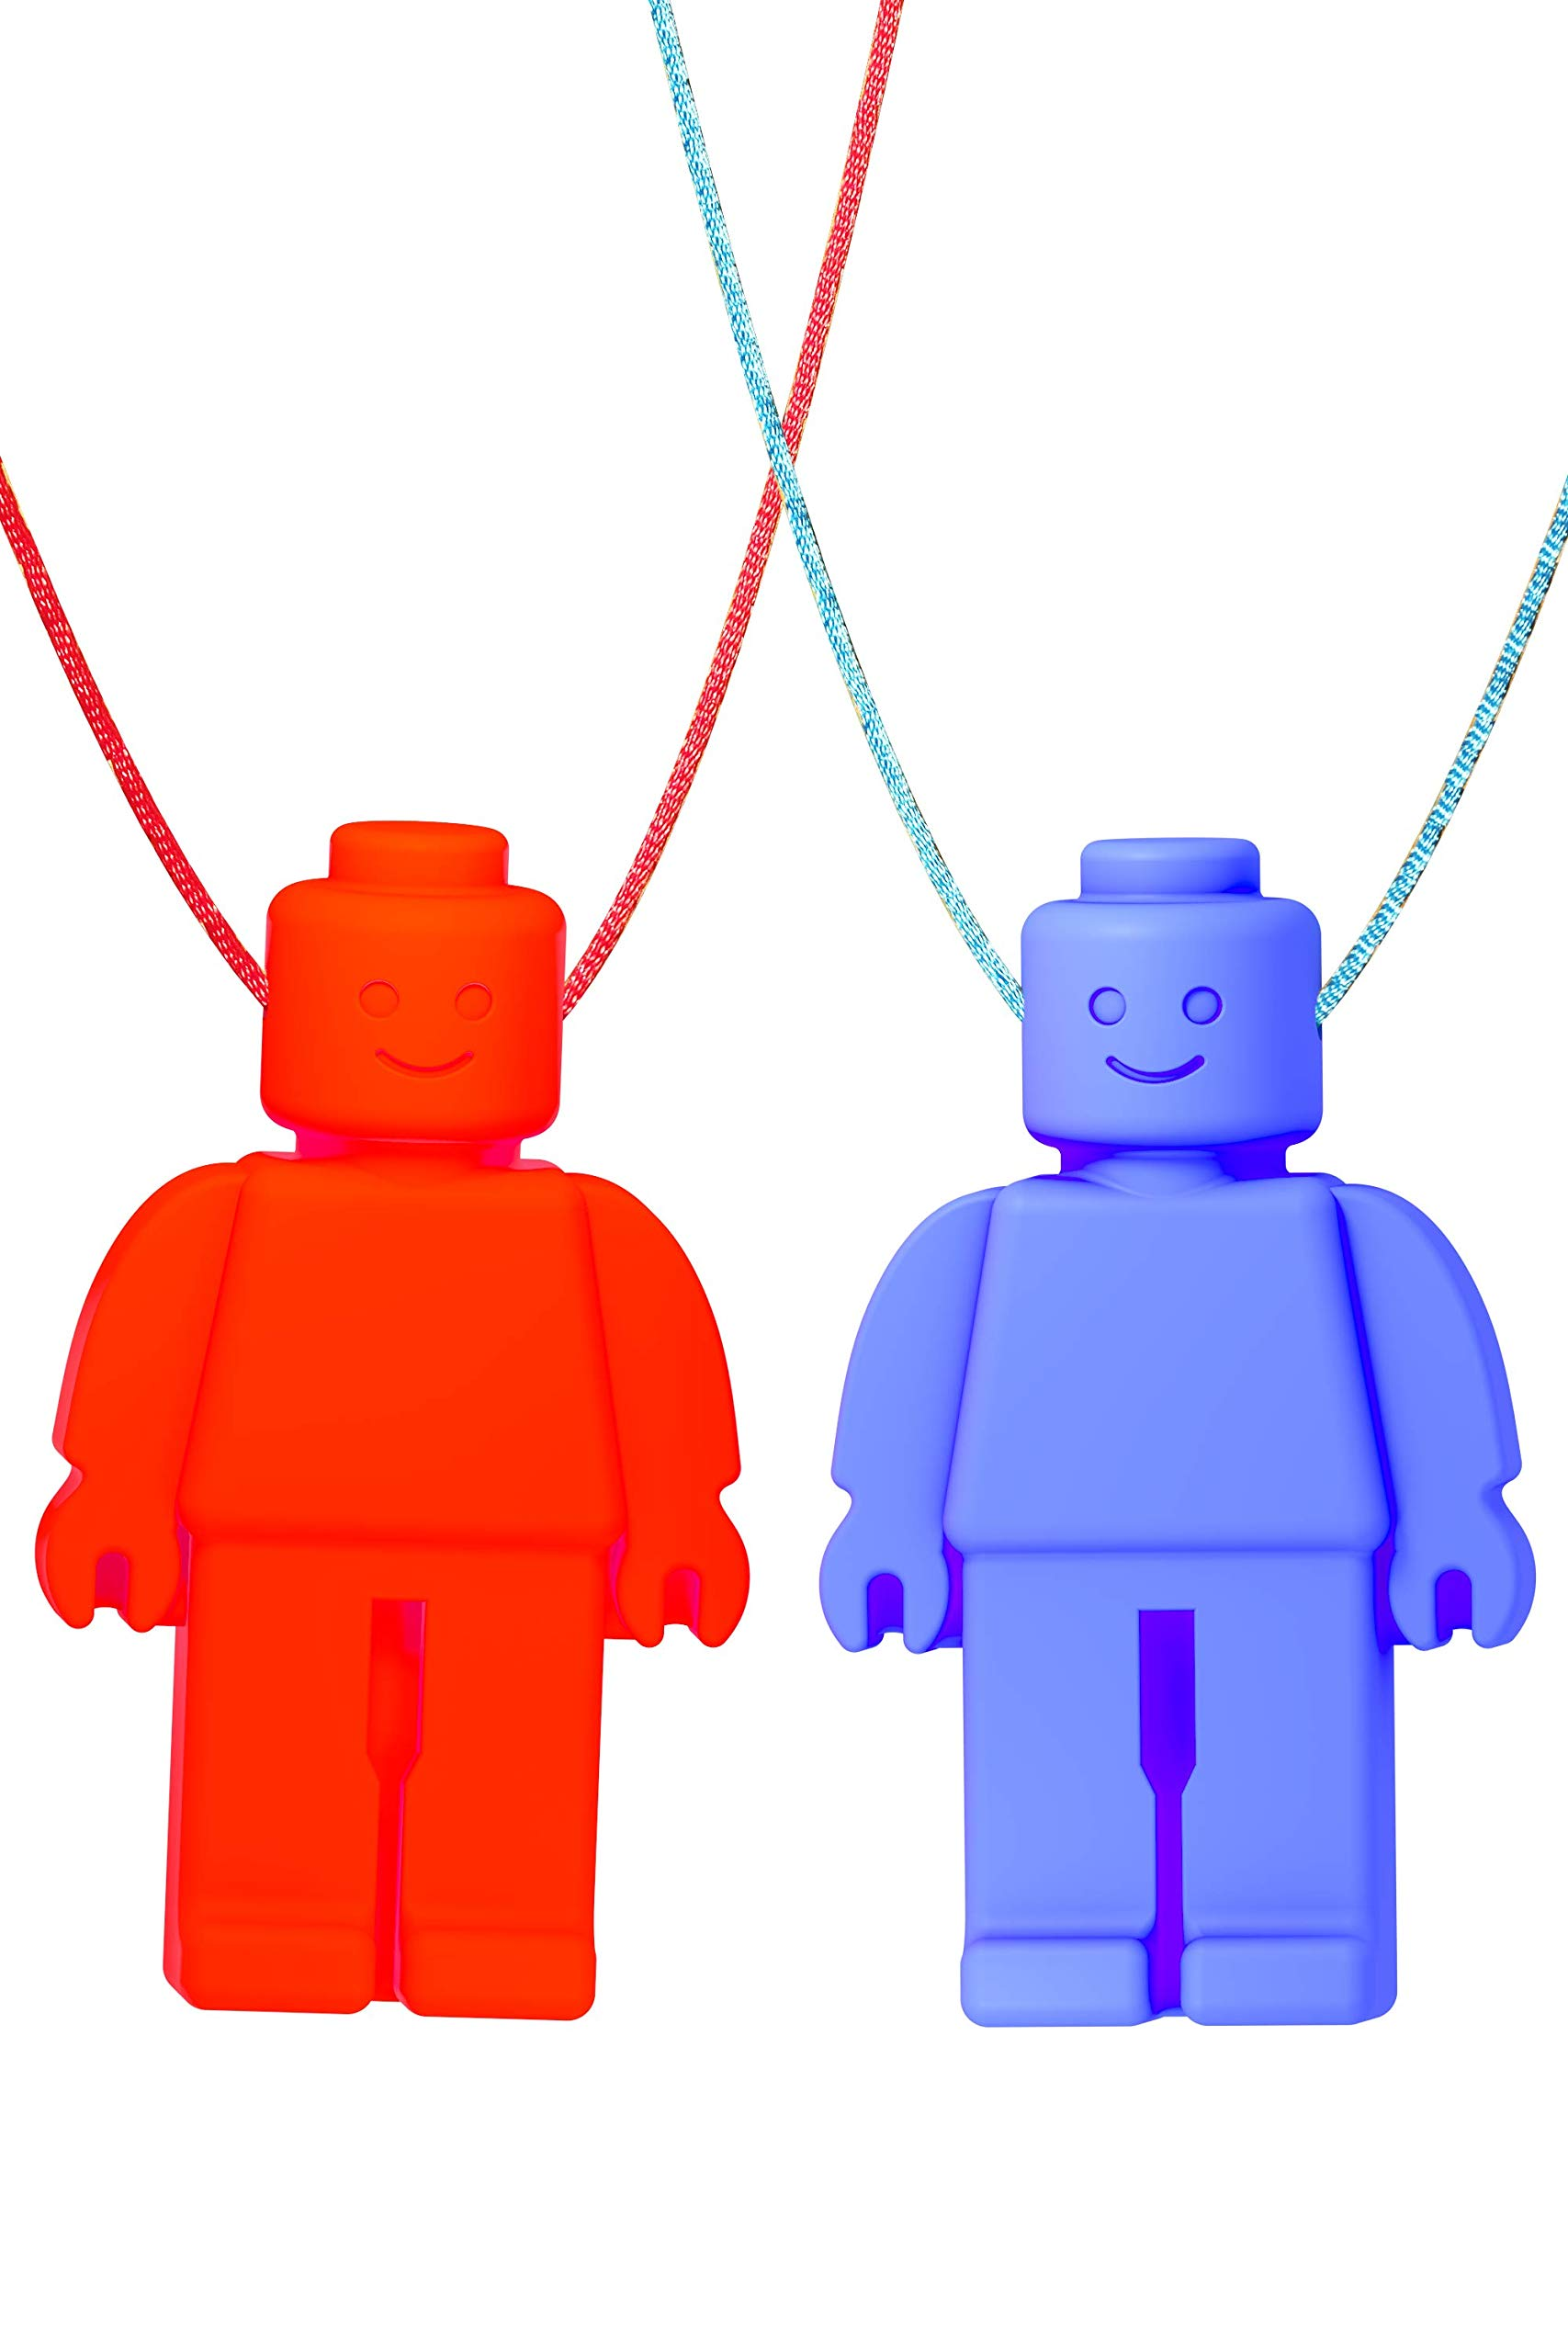 Chew Necklace (Block Buddies) by GNAWRISHING - 2-Pack (Red and Blue with Colored Cords) - Perfect for Autistic, ADHD, SPD, Oral Motor Children, Kids, Boys, and Girls (Tough, Long-Lasting)